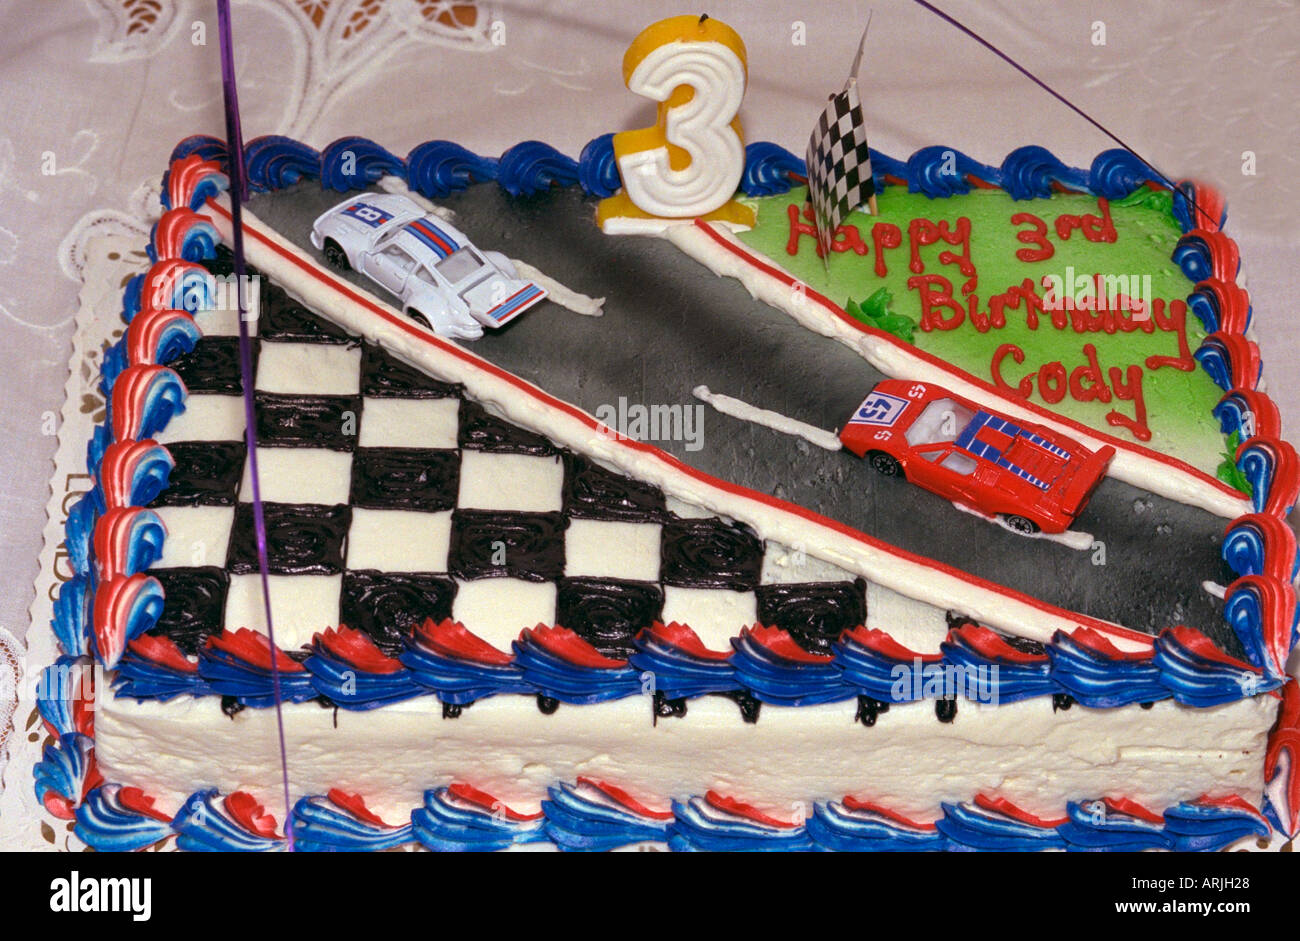 Race Car Cake Waiting To Be Lit At 3 Year Old Boys Birthday Party Brooklyn